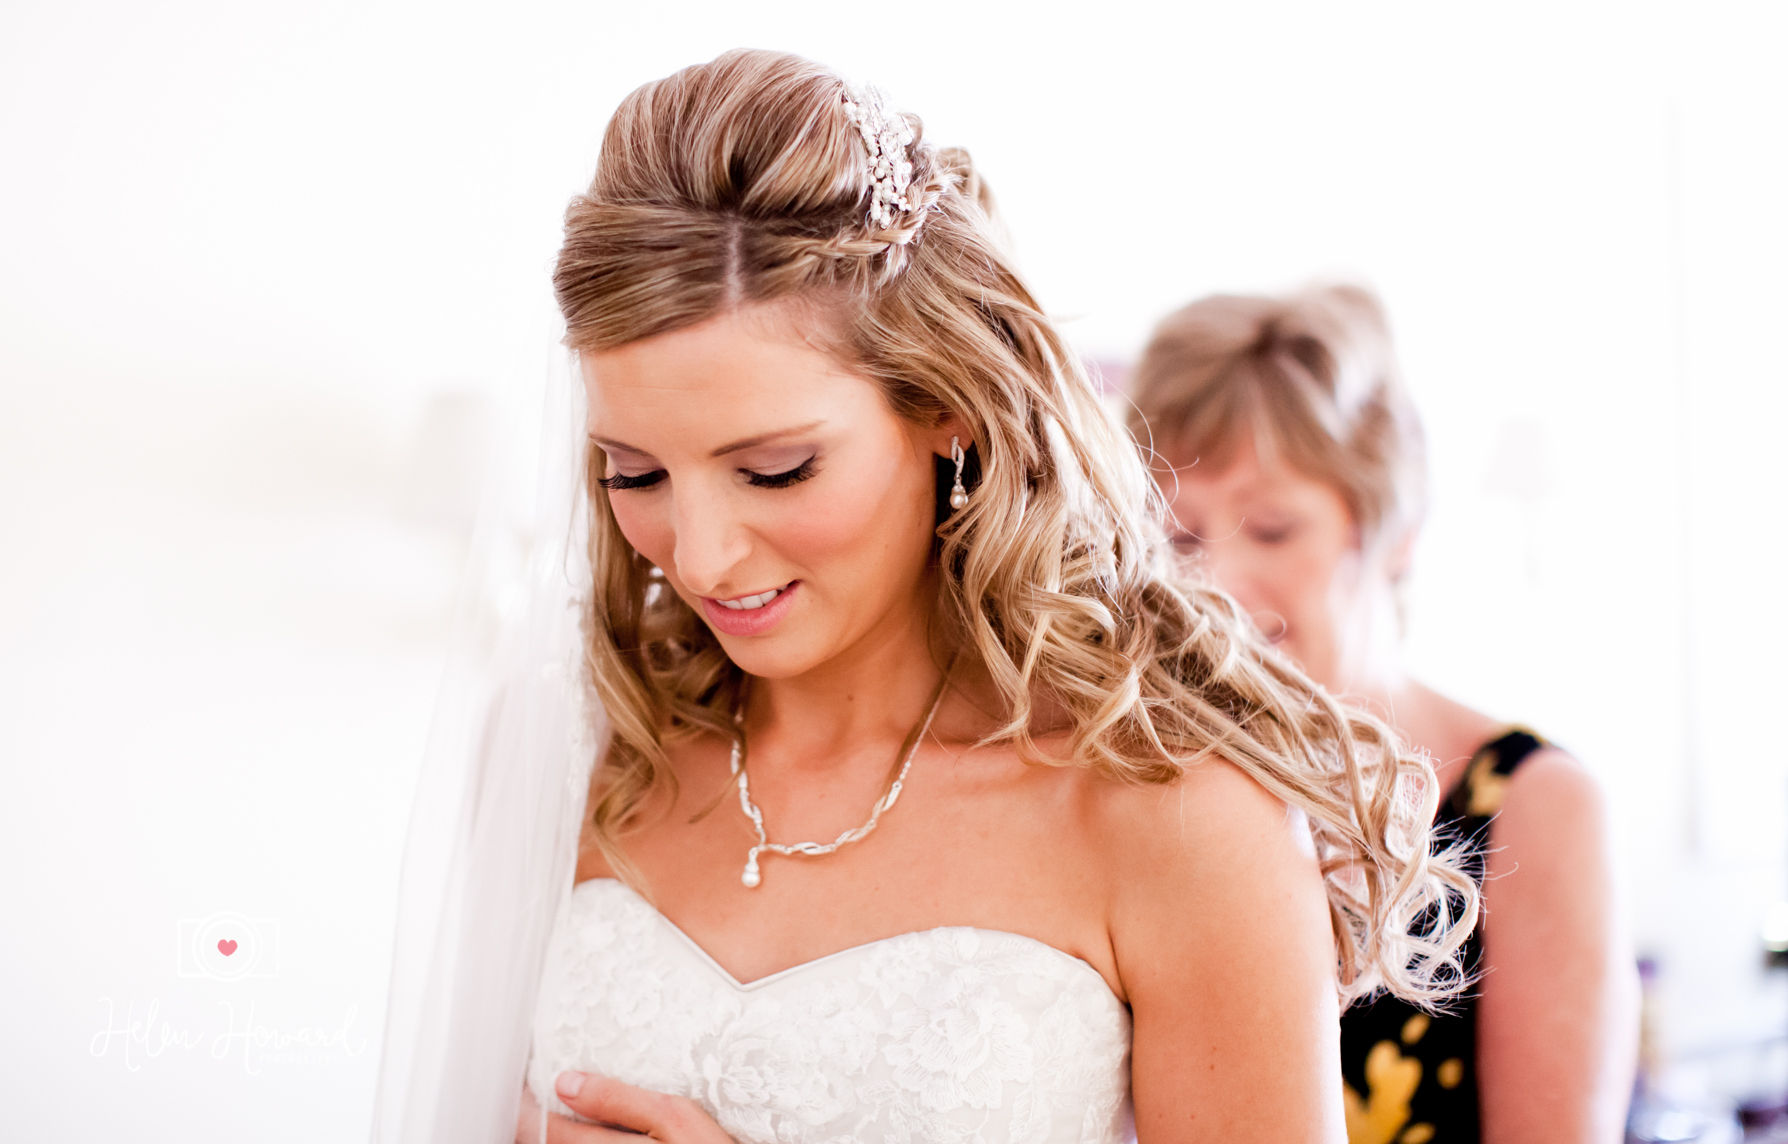 Wedding Photography at Moor Hall in Sutton Coldfield